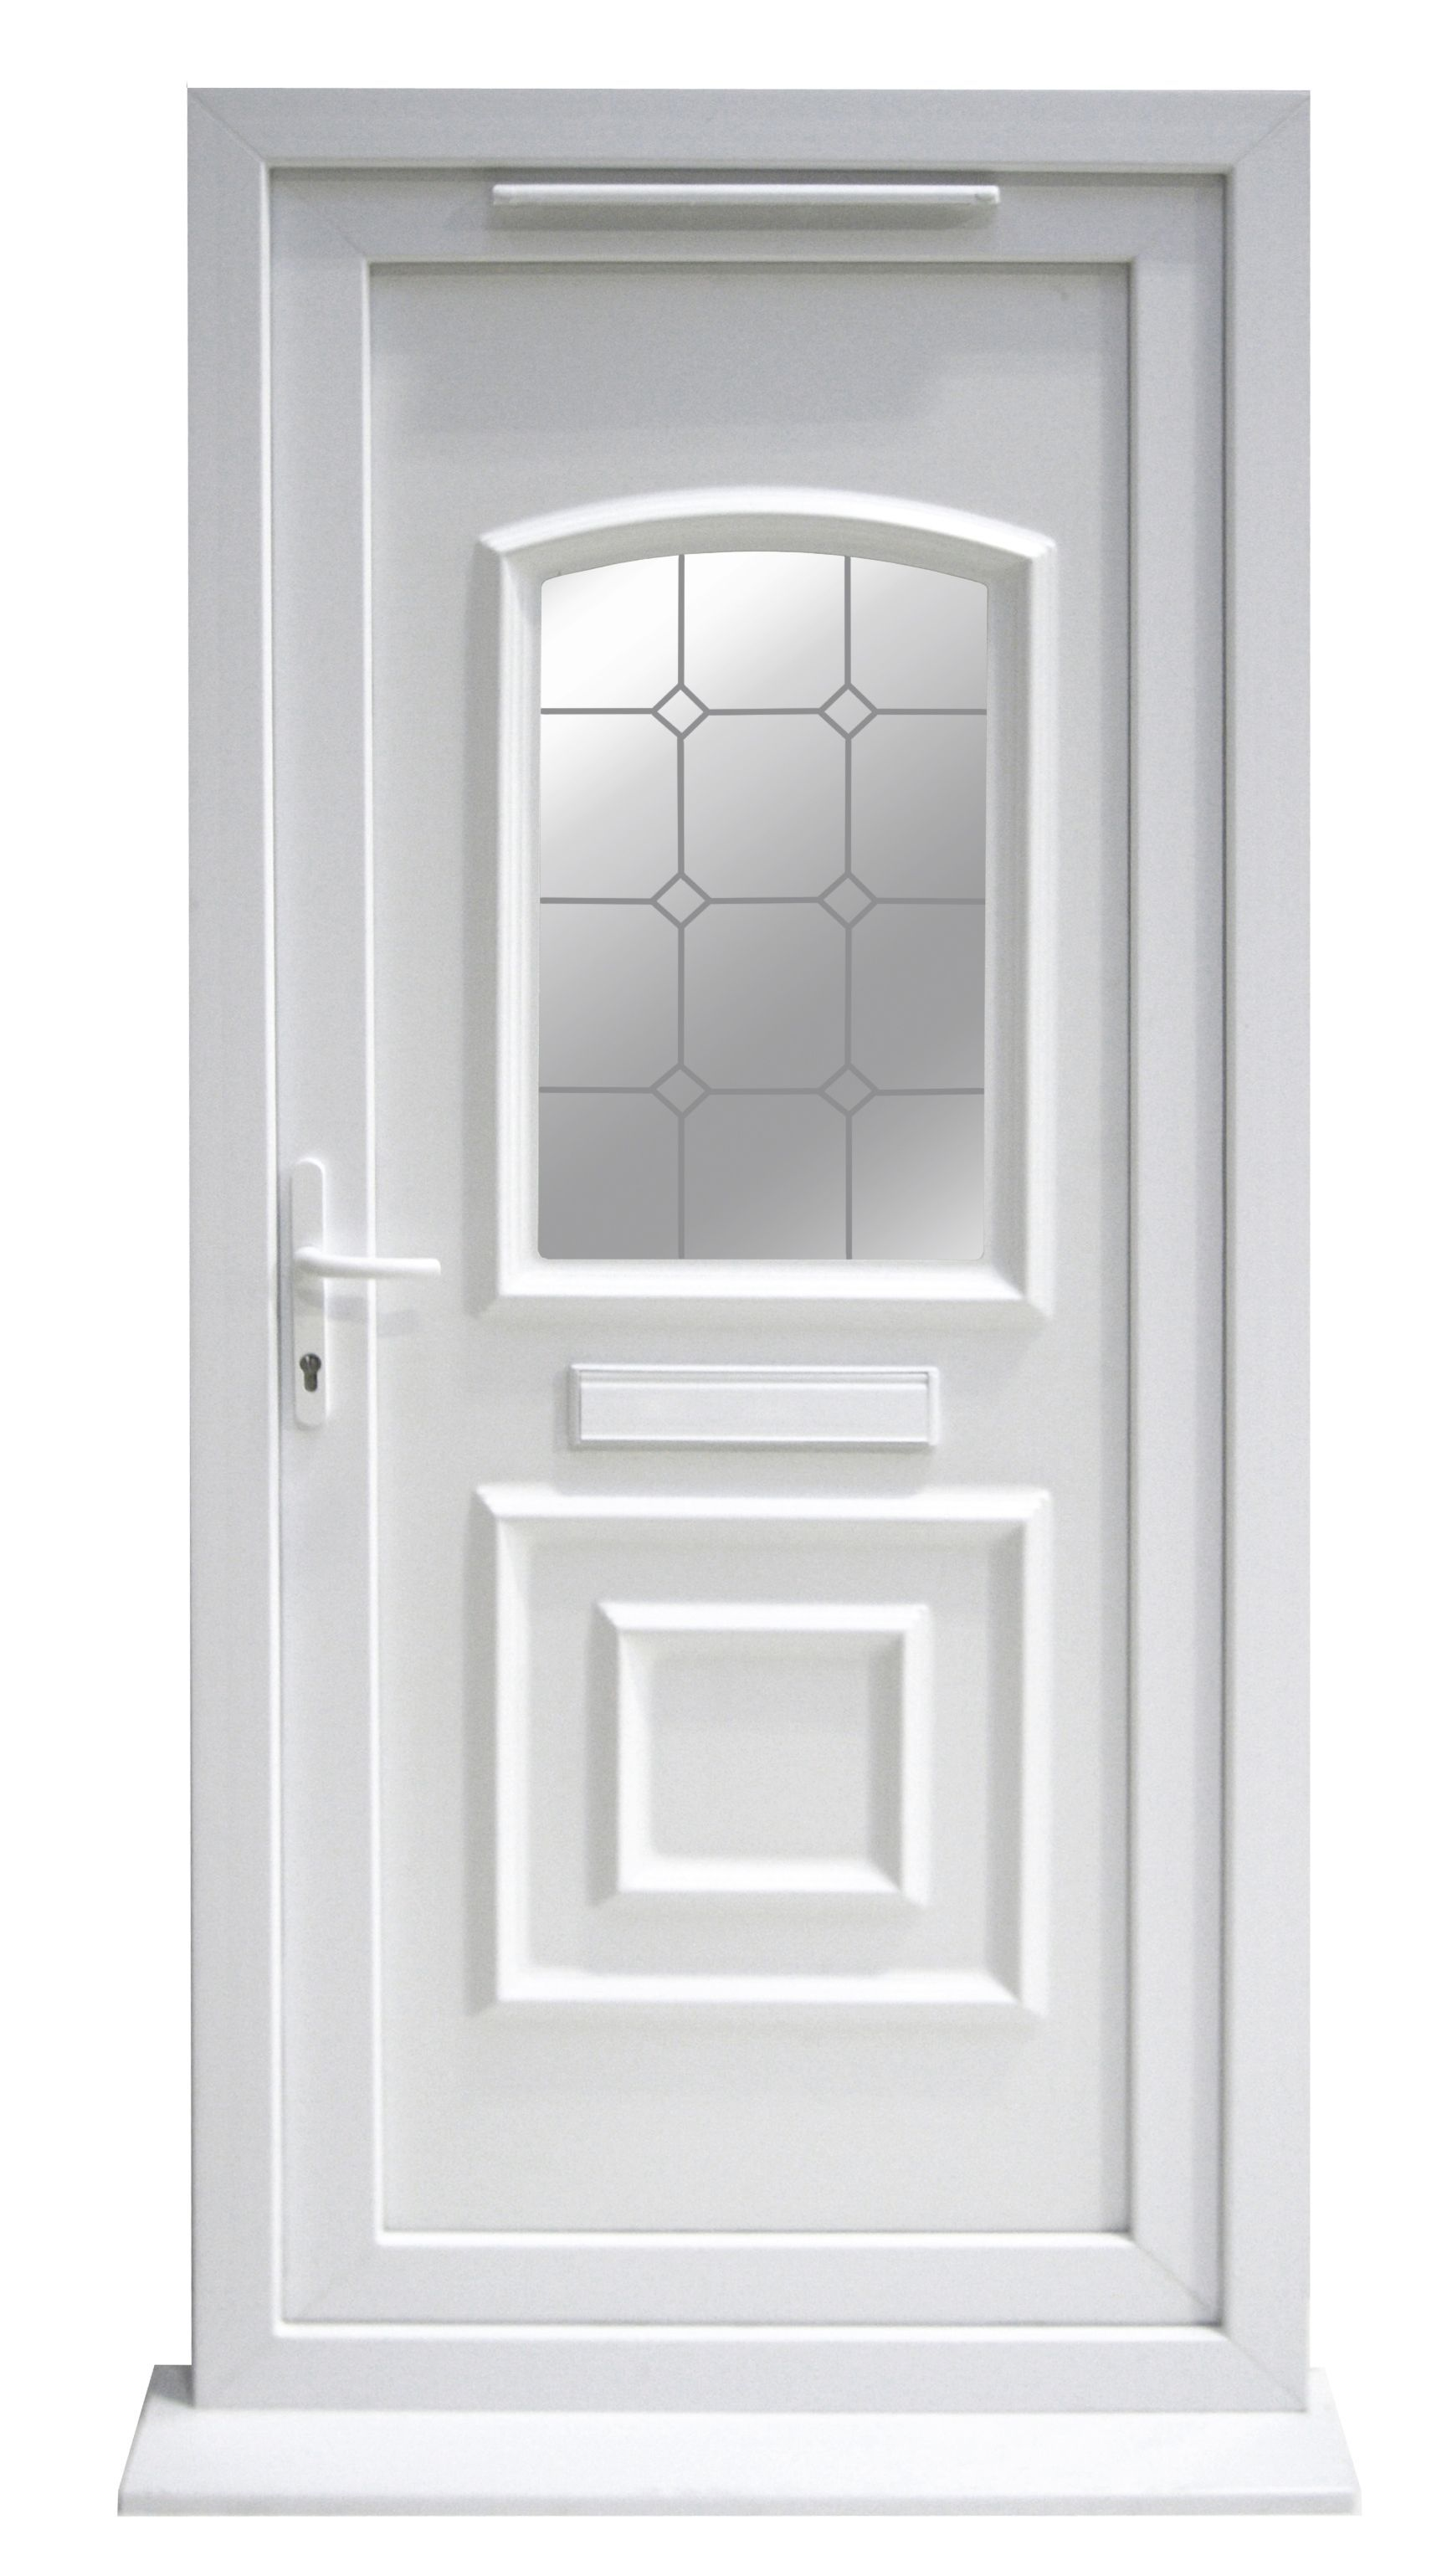 Ashgrove 2 Panel Pvcu White Glazed External Front Door Frame Rh H 2055mm W 920mm Departments Diy At B Q